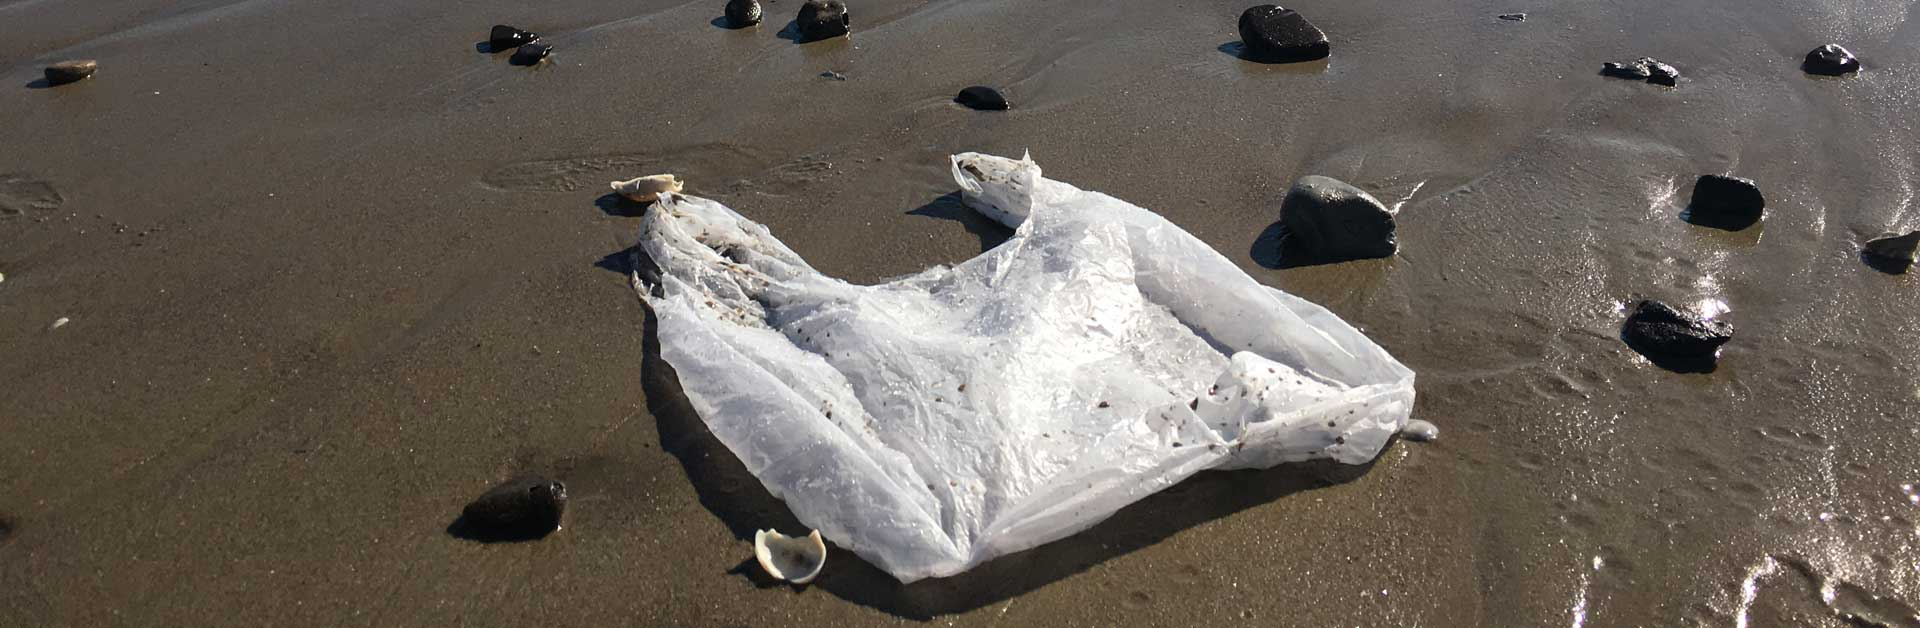 A plastic bag polluting the beaches in Santa Barbara.